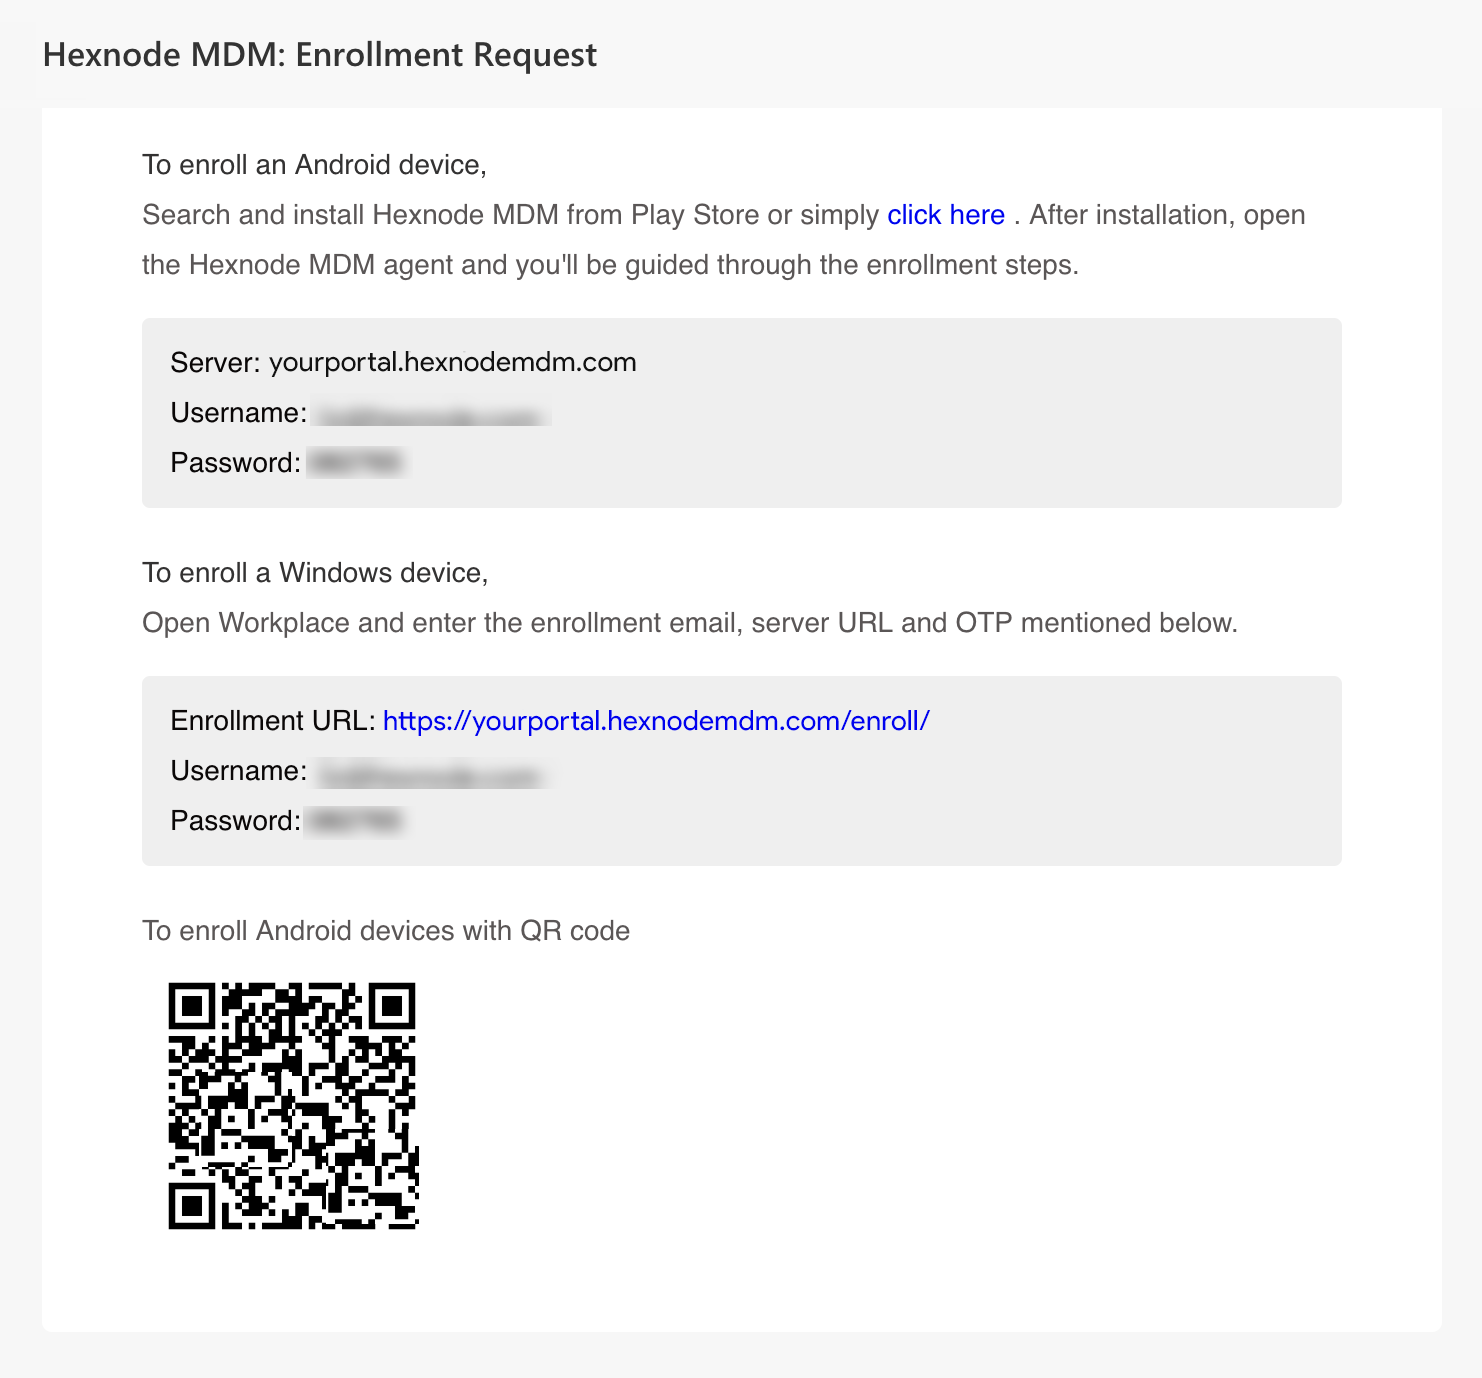 sent email request for authenticated enrollment